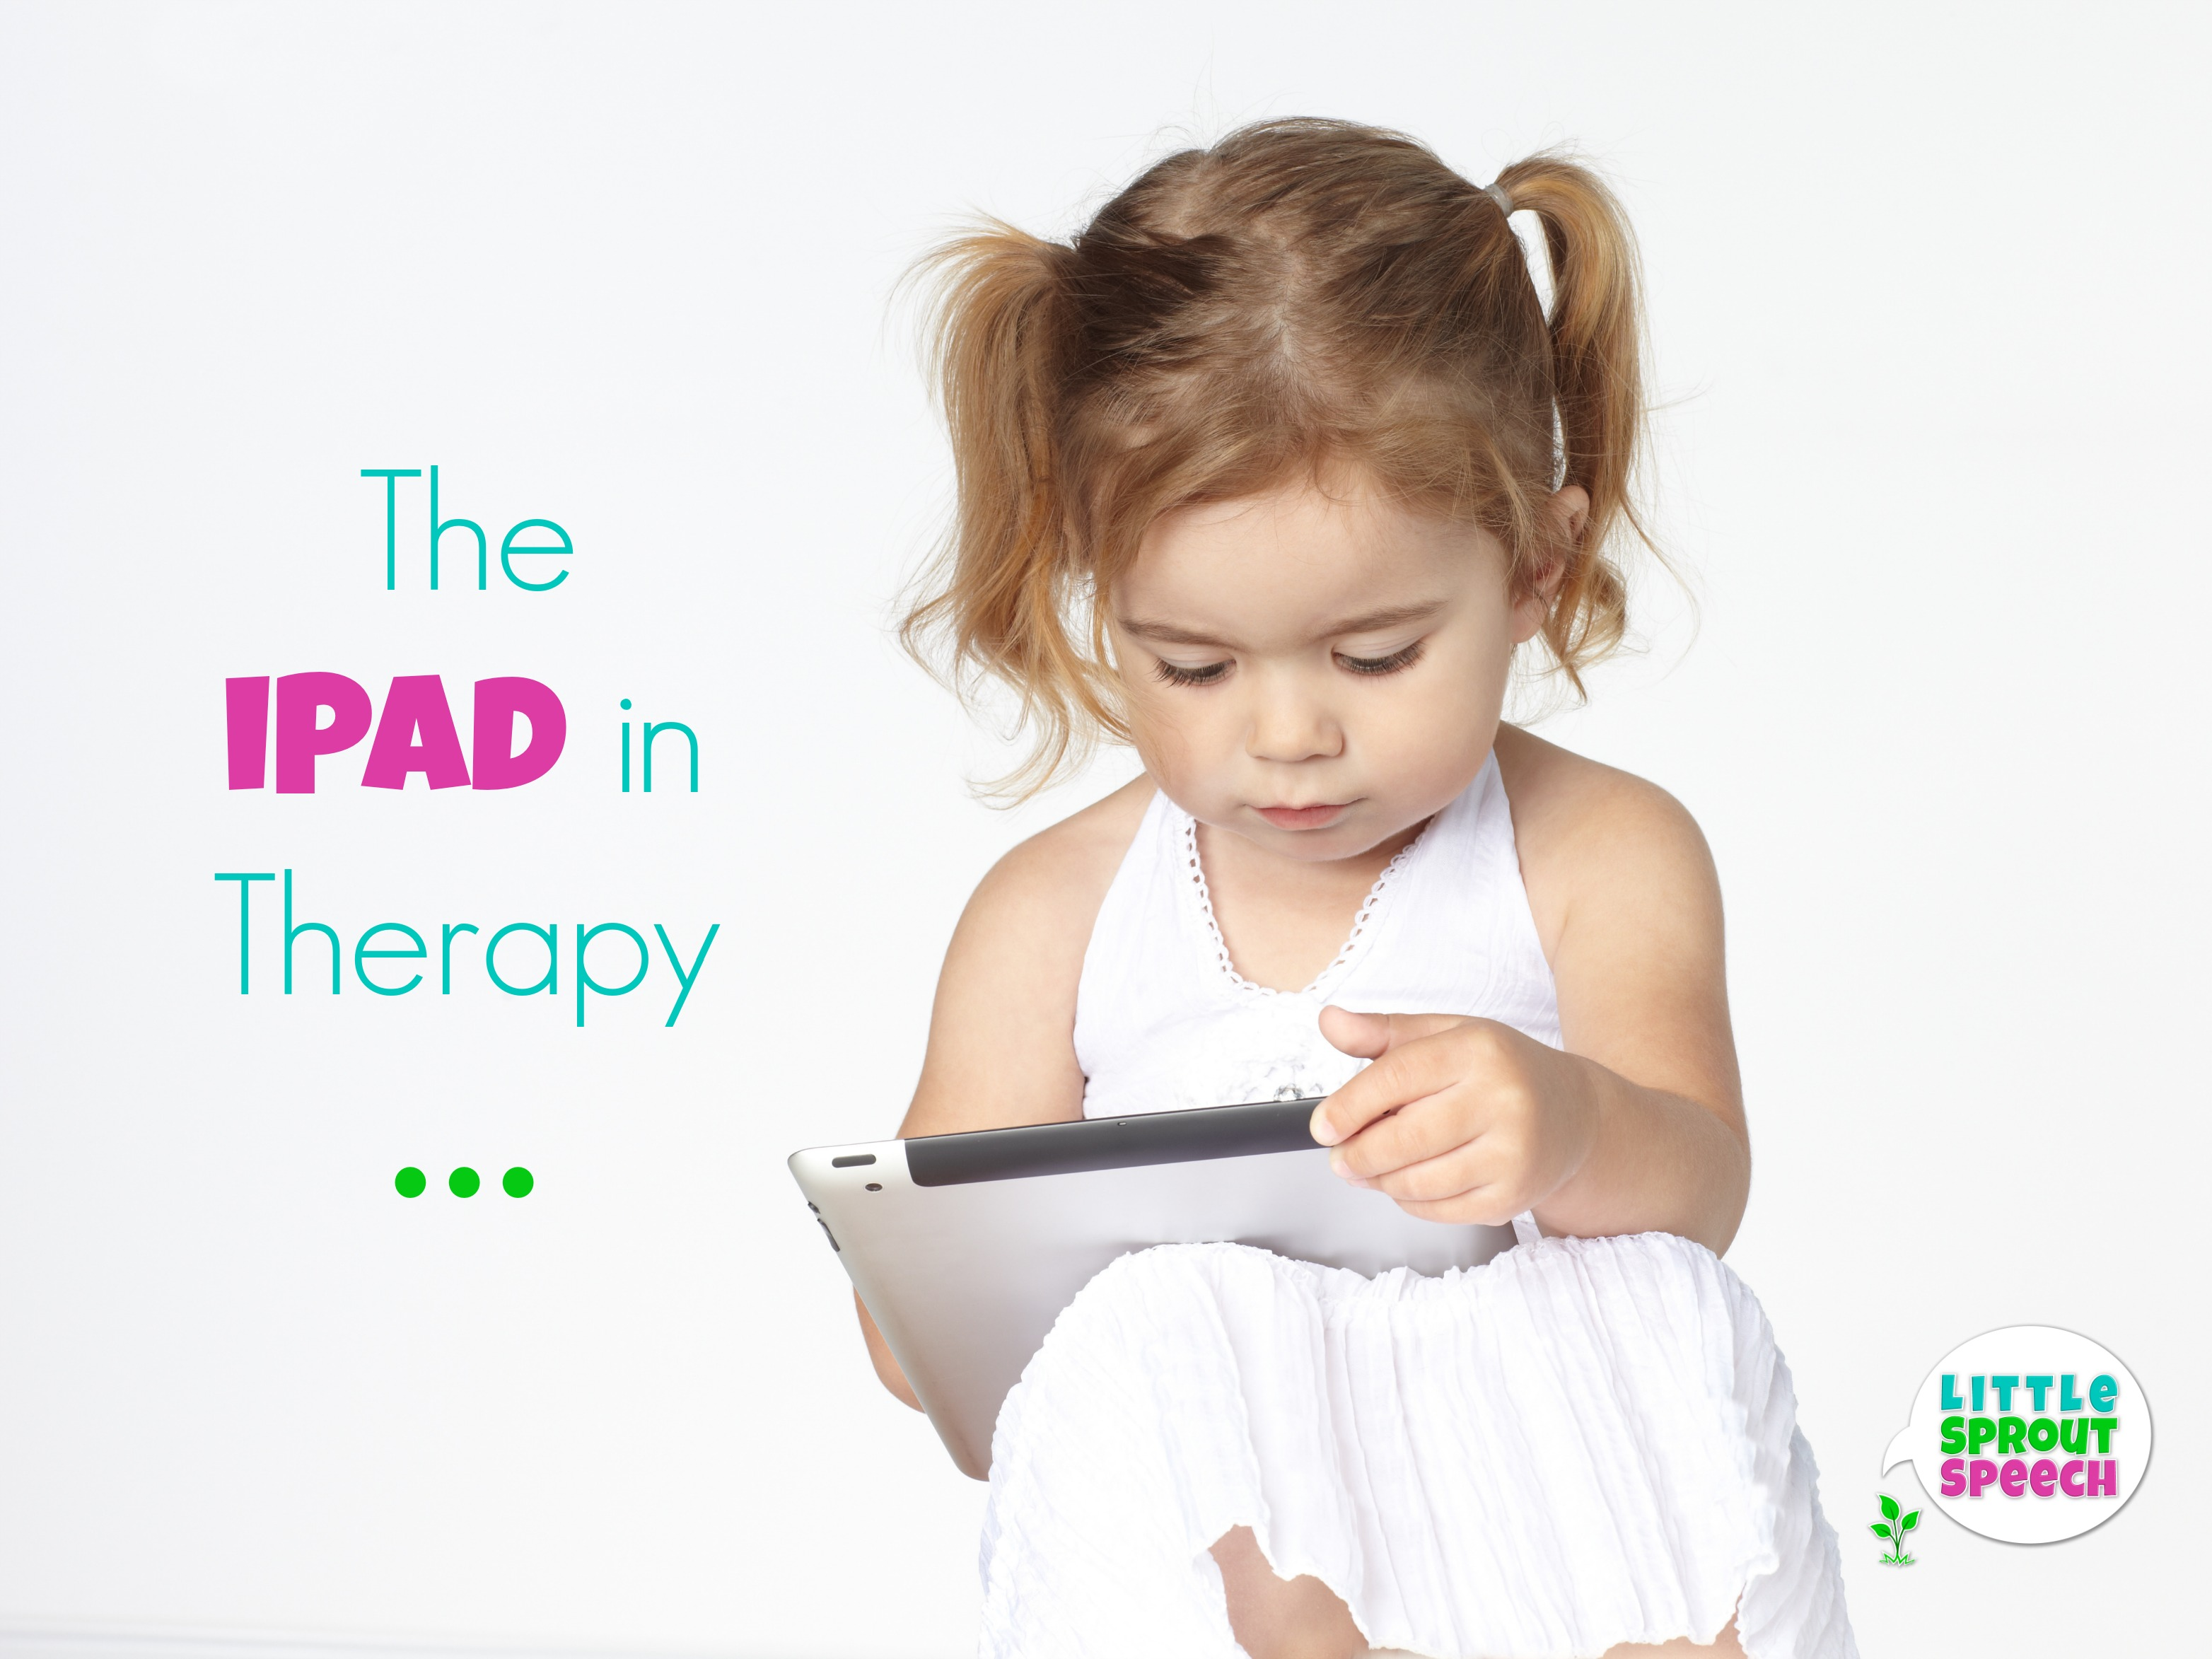 The iPad in Therapy